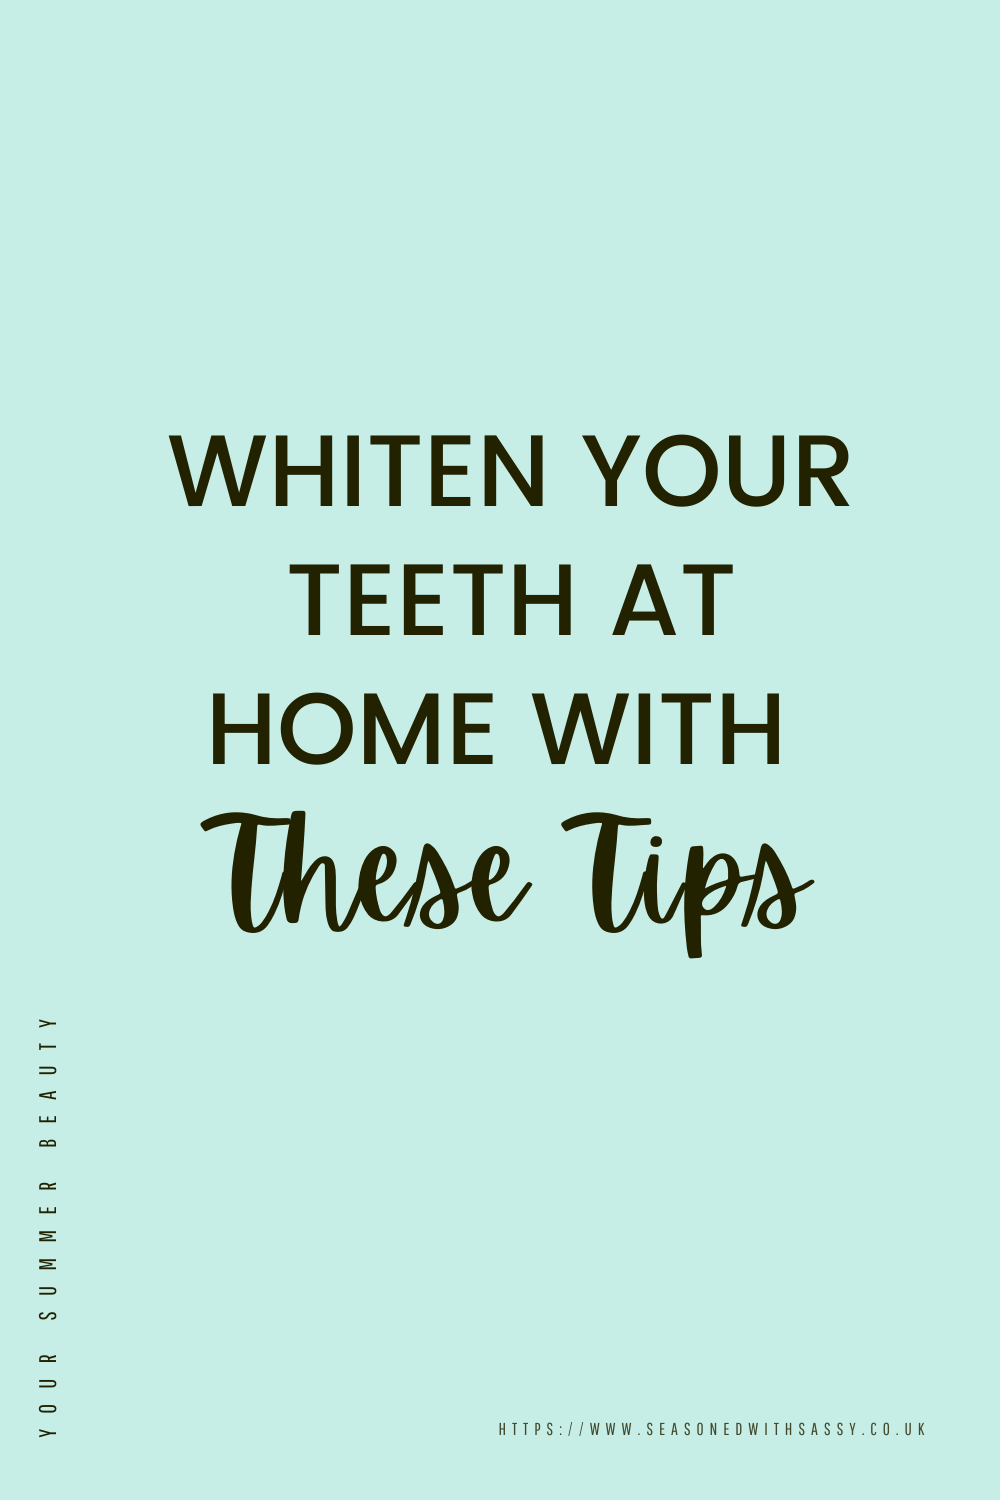 Whiten Your Teeth at Home With These Tips